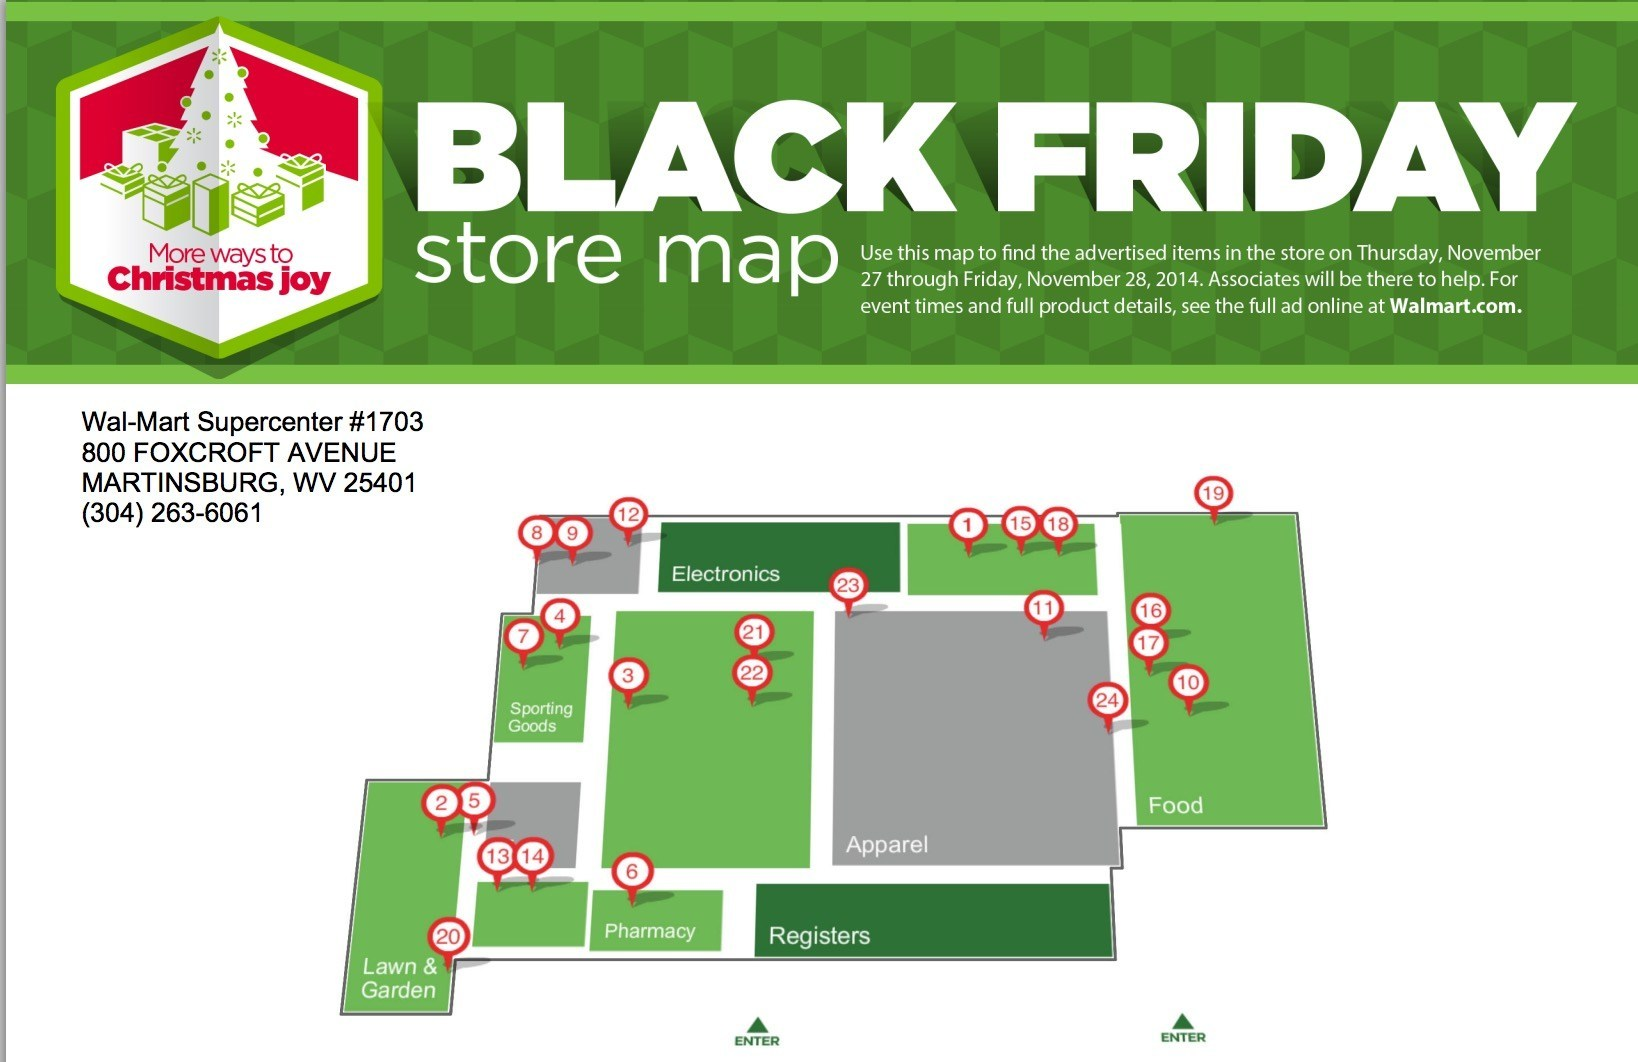 Walmart Black Friday Party and Maps